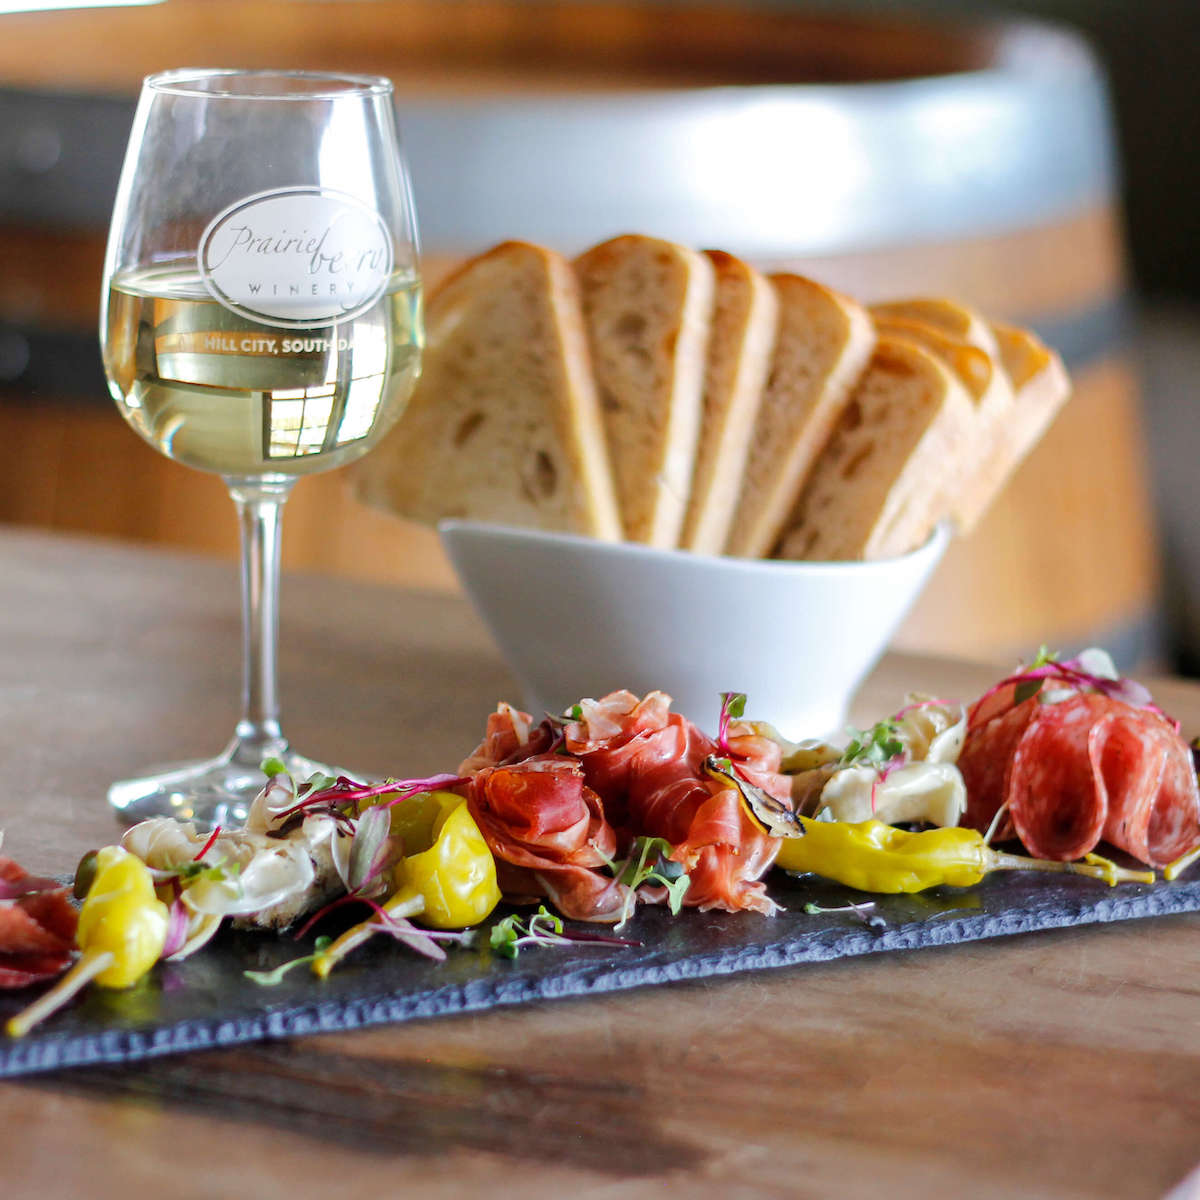 Antipasto Platter, a glass of white wine, and sliced bread